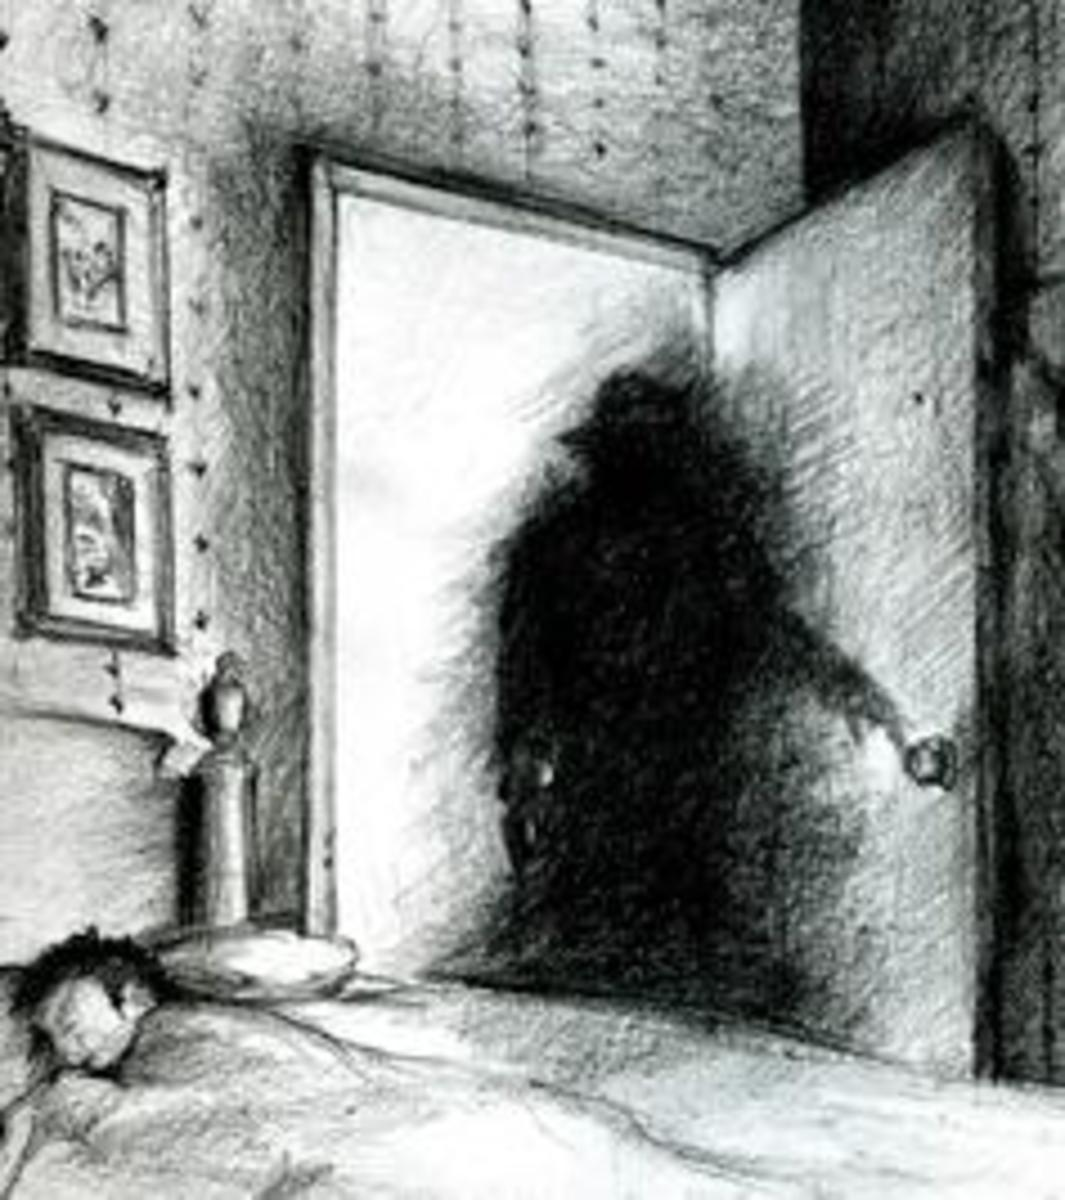 Have you ever seen shadow people? If so, please post a comment below.